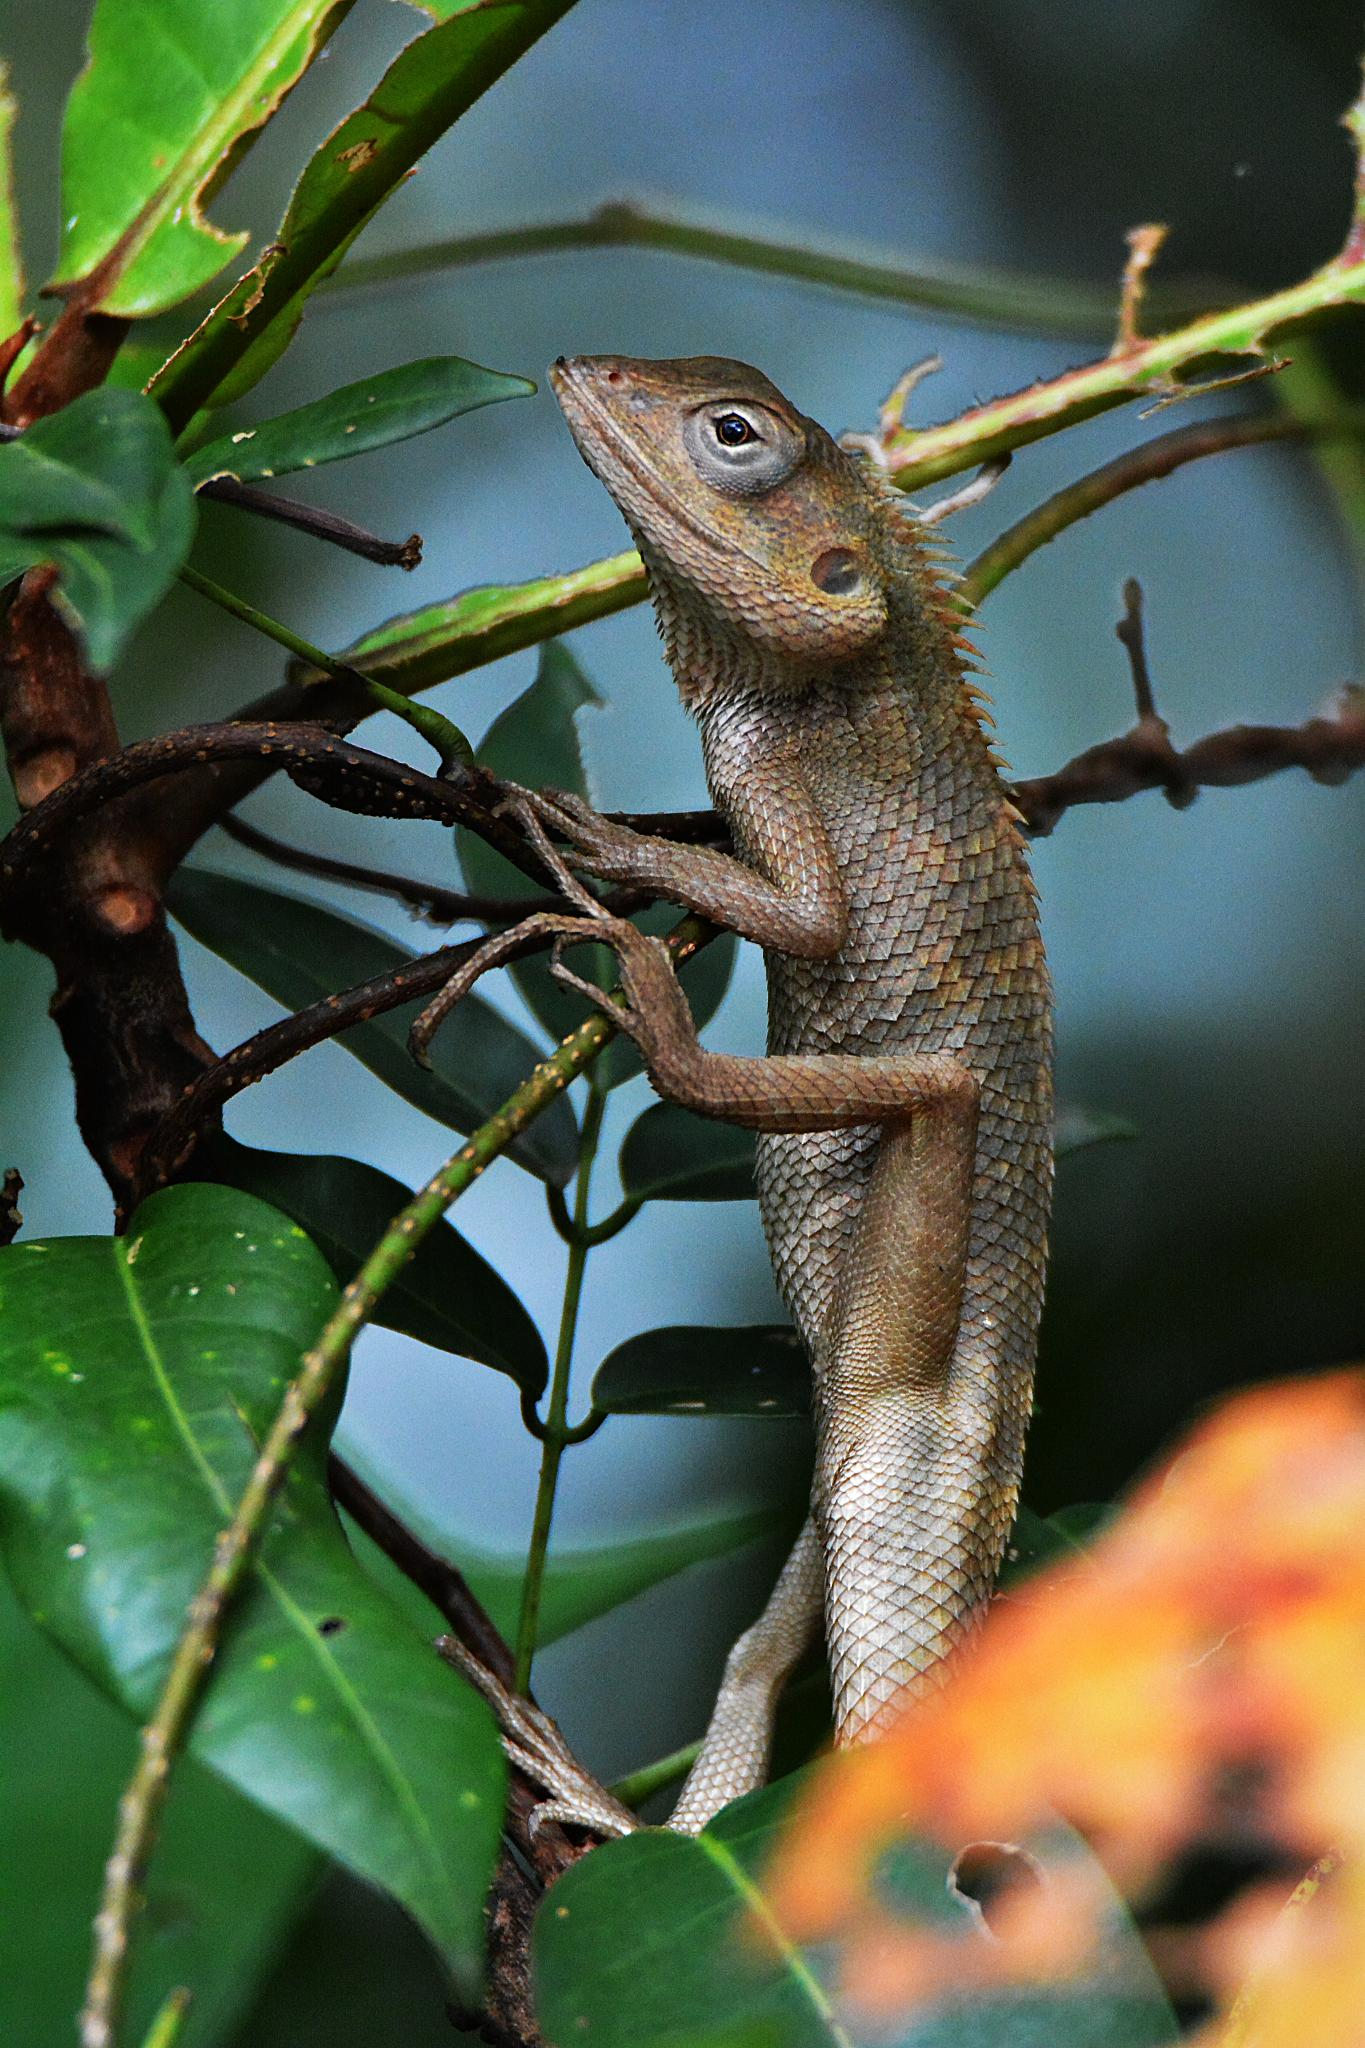 Changeable Lizard (Calotes versicolor) by Adrian Gopal